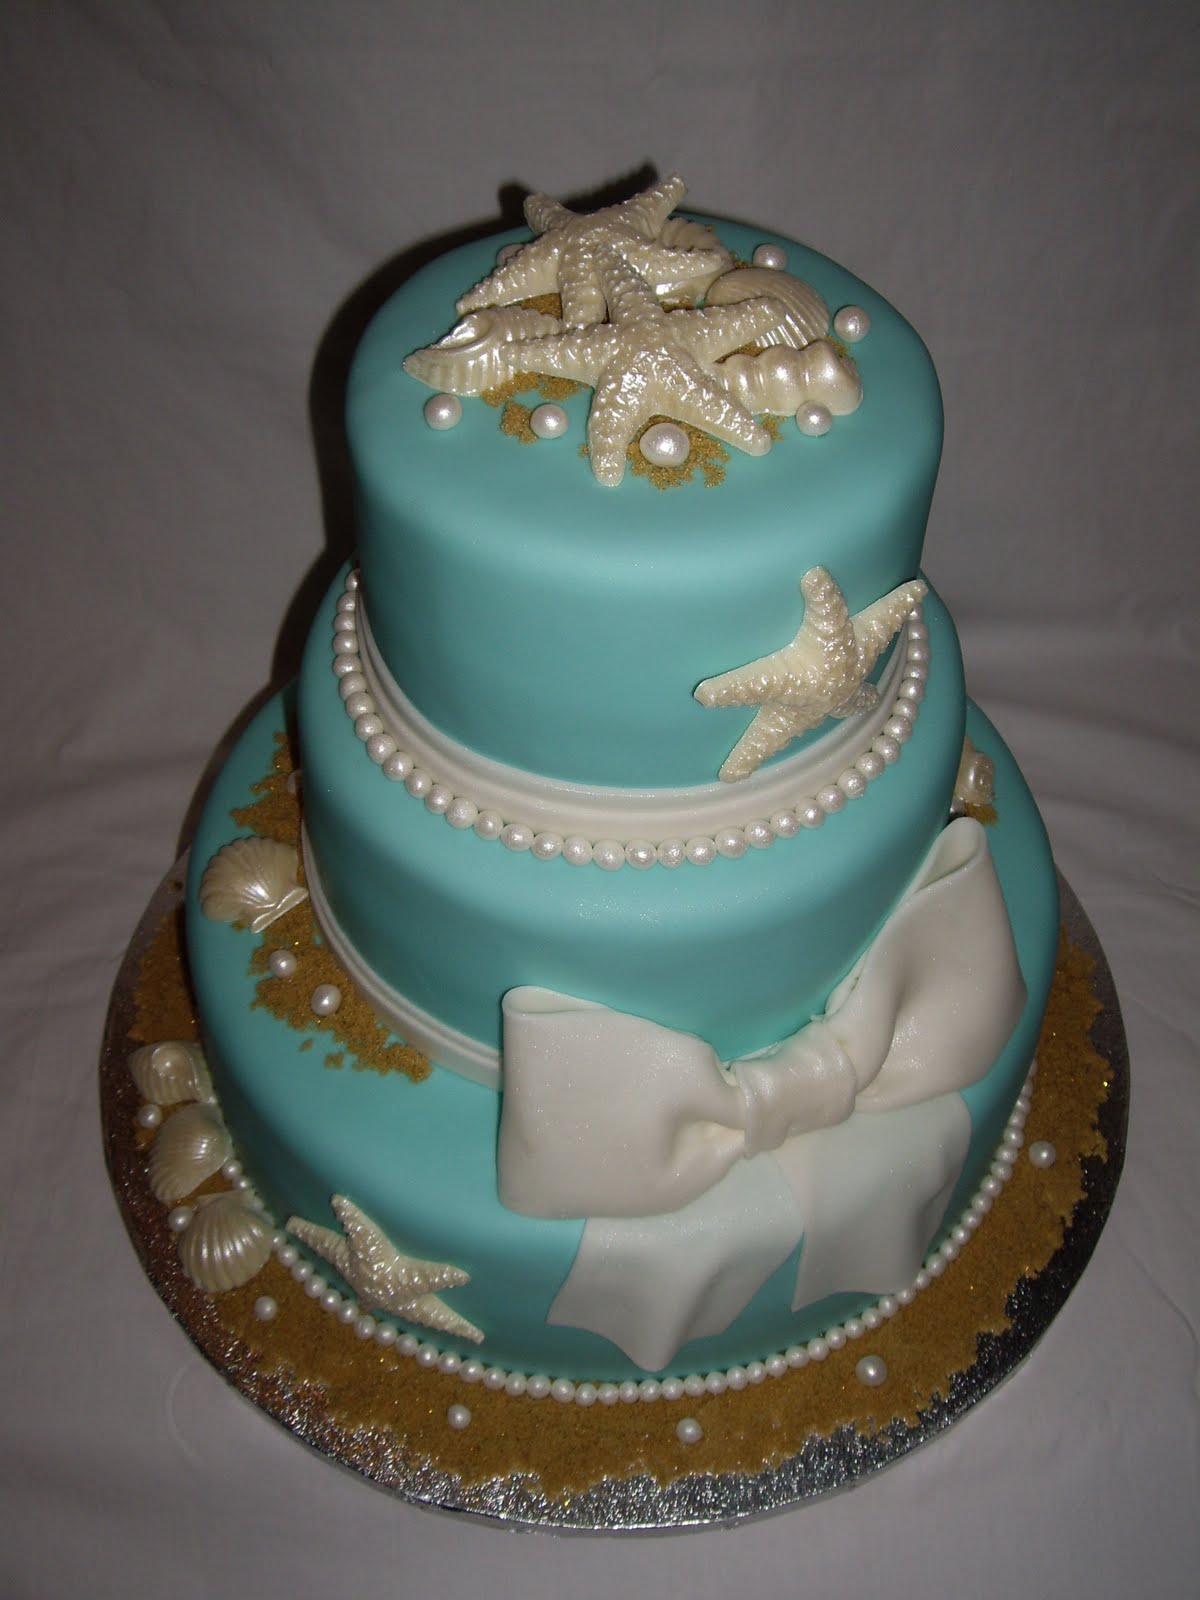 Edible Seashells for Wedding Cakes http://www.darciescustomcakes.blogspot.com/